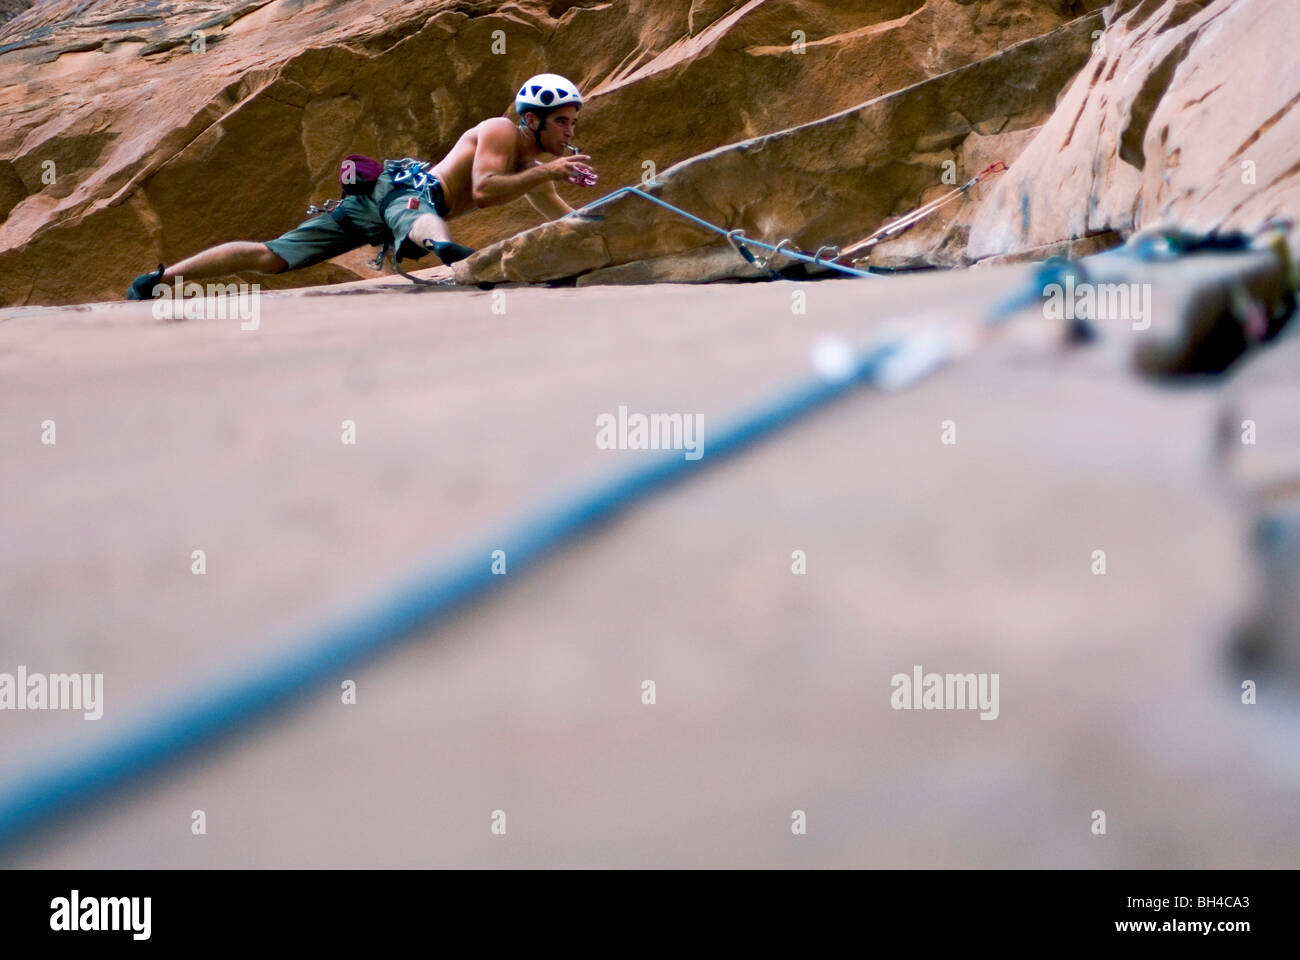 With trad gear in hand, a young man examines the rock climbing route in Moab, Utah. - Stock Image